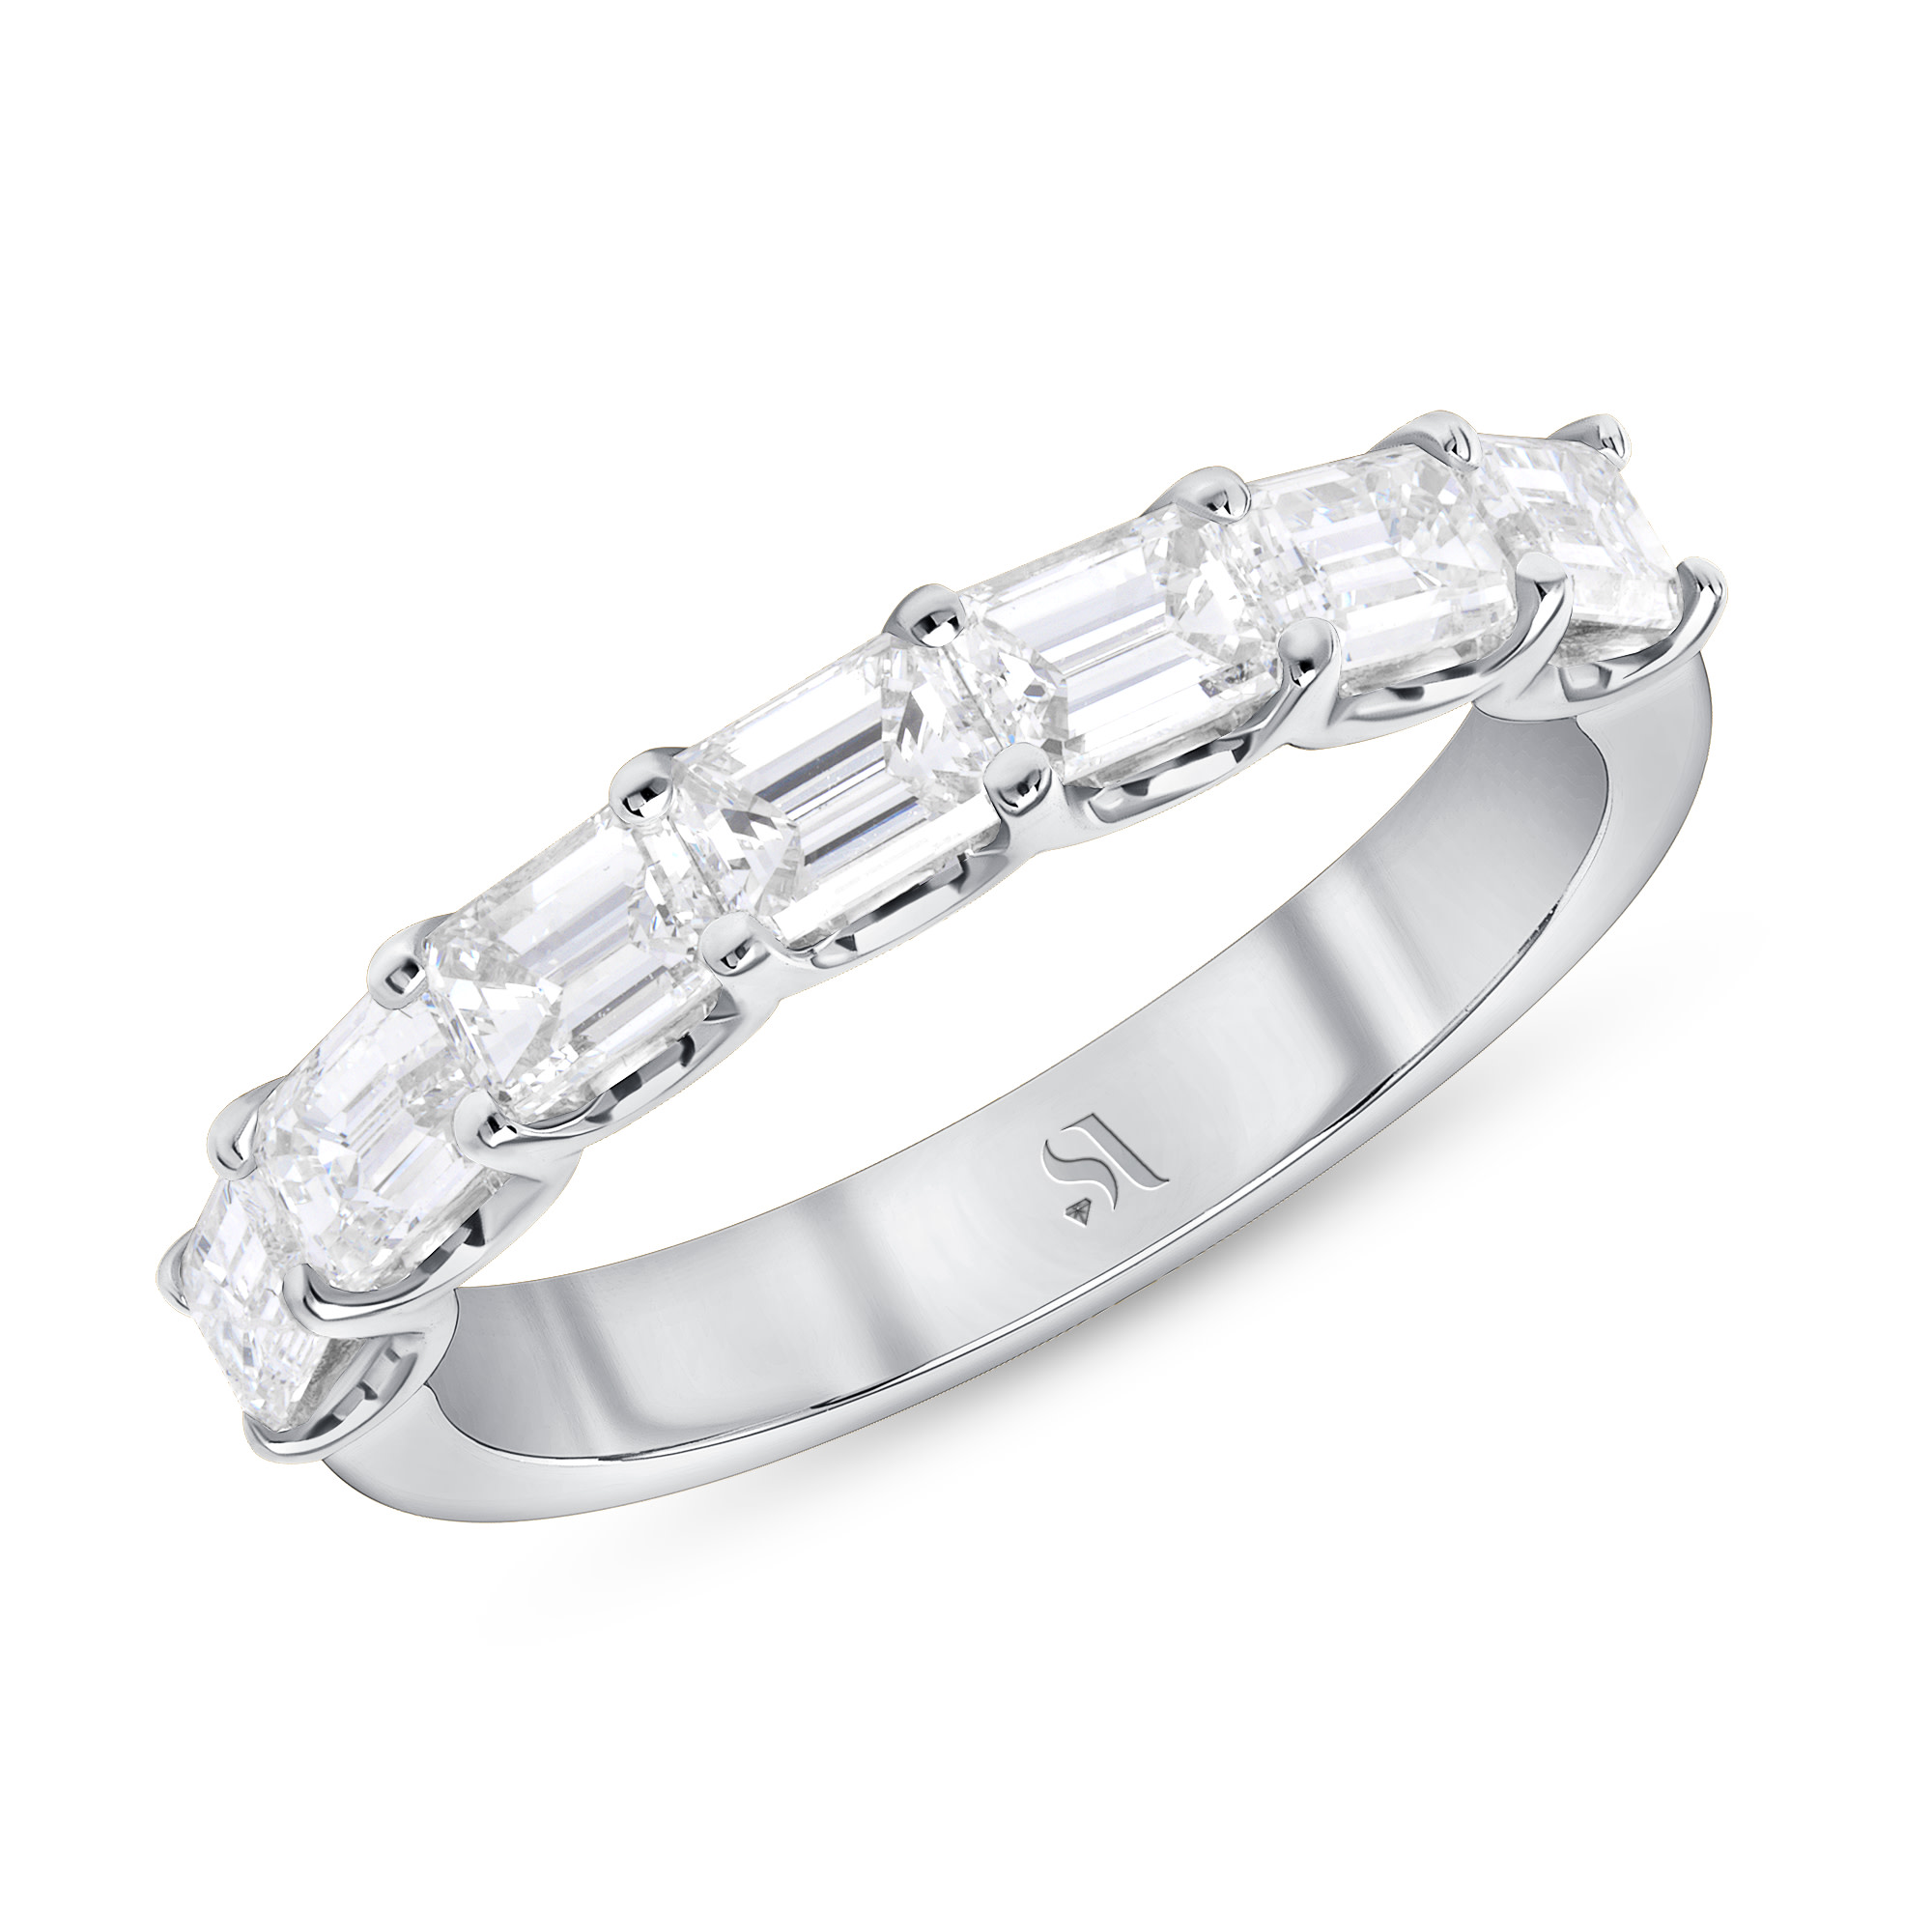 EastWest Side Emerald Cut Diamond Halfway Eternity Band | Sabrina A Inc